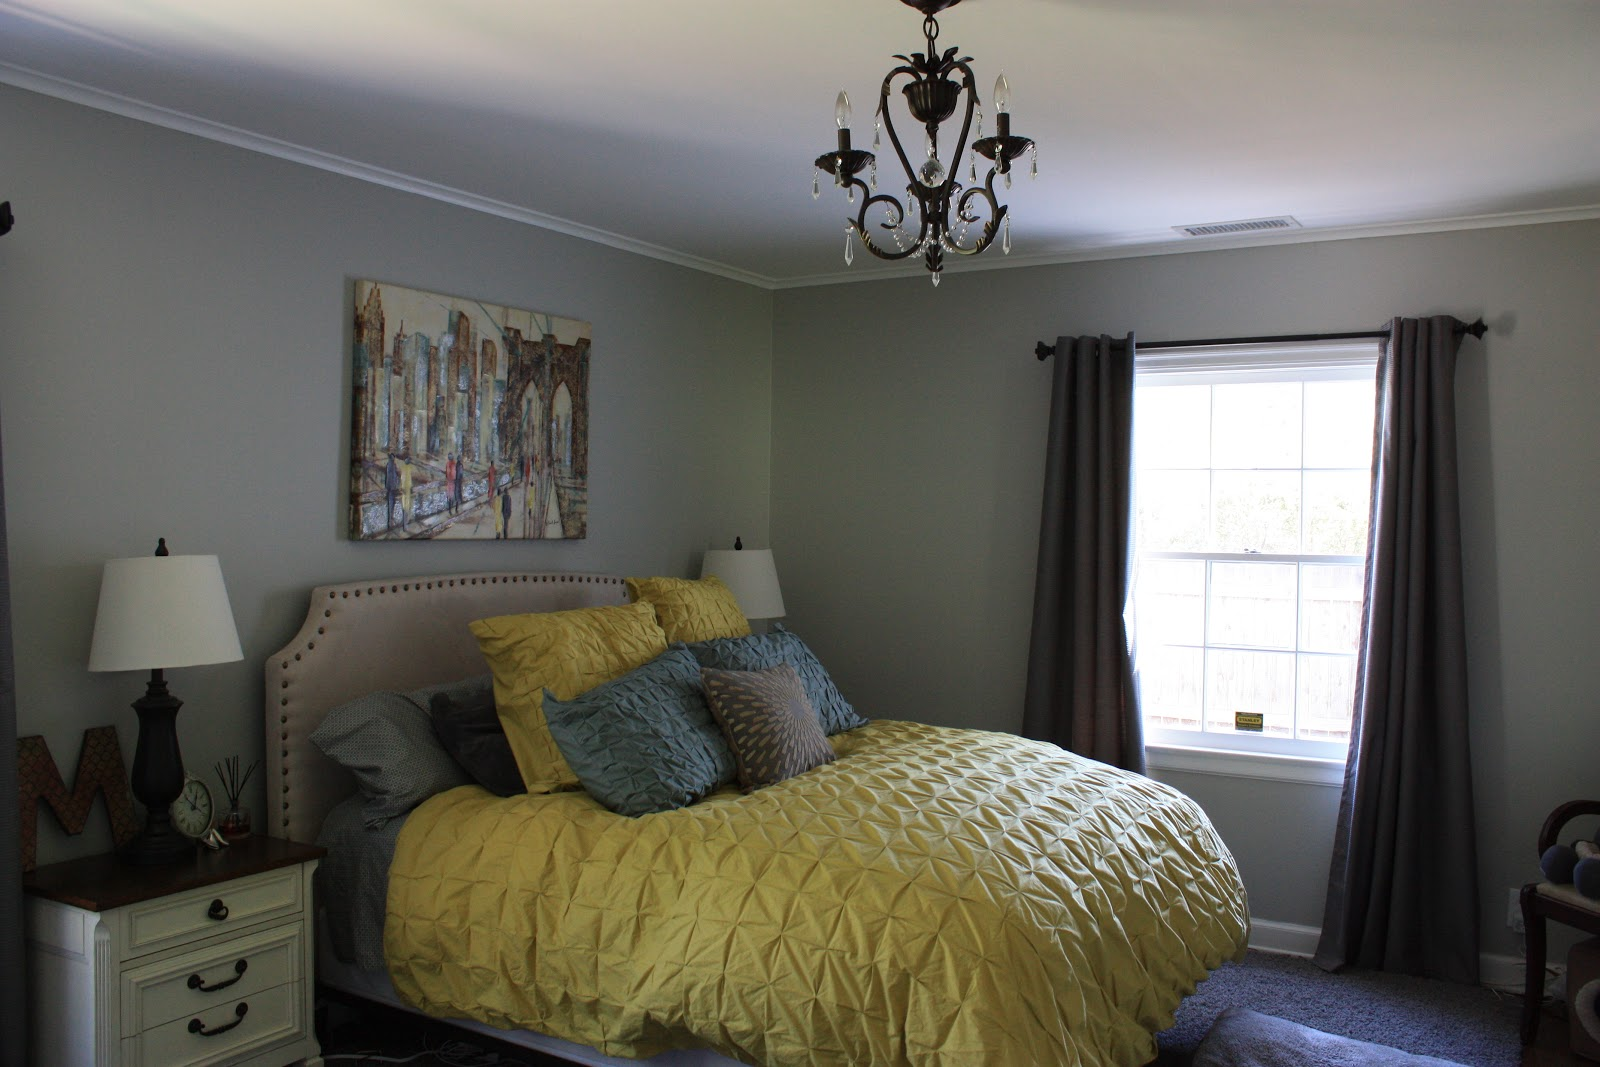 canary yellow bedding! so stunning.